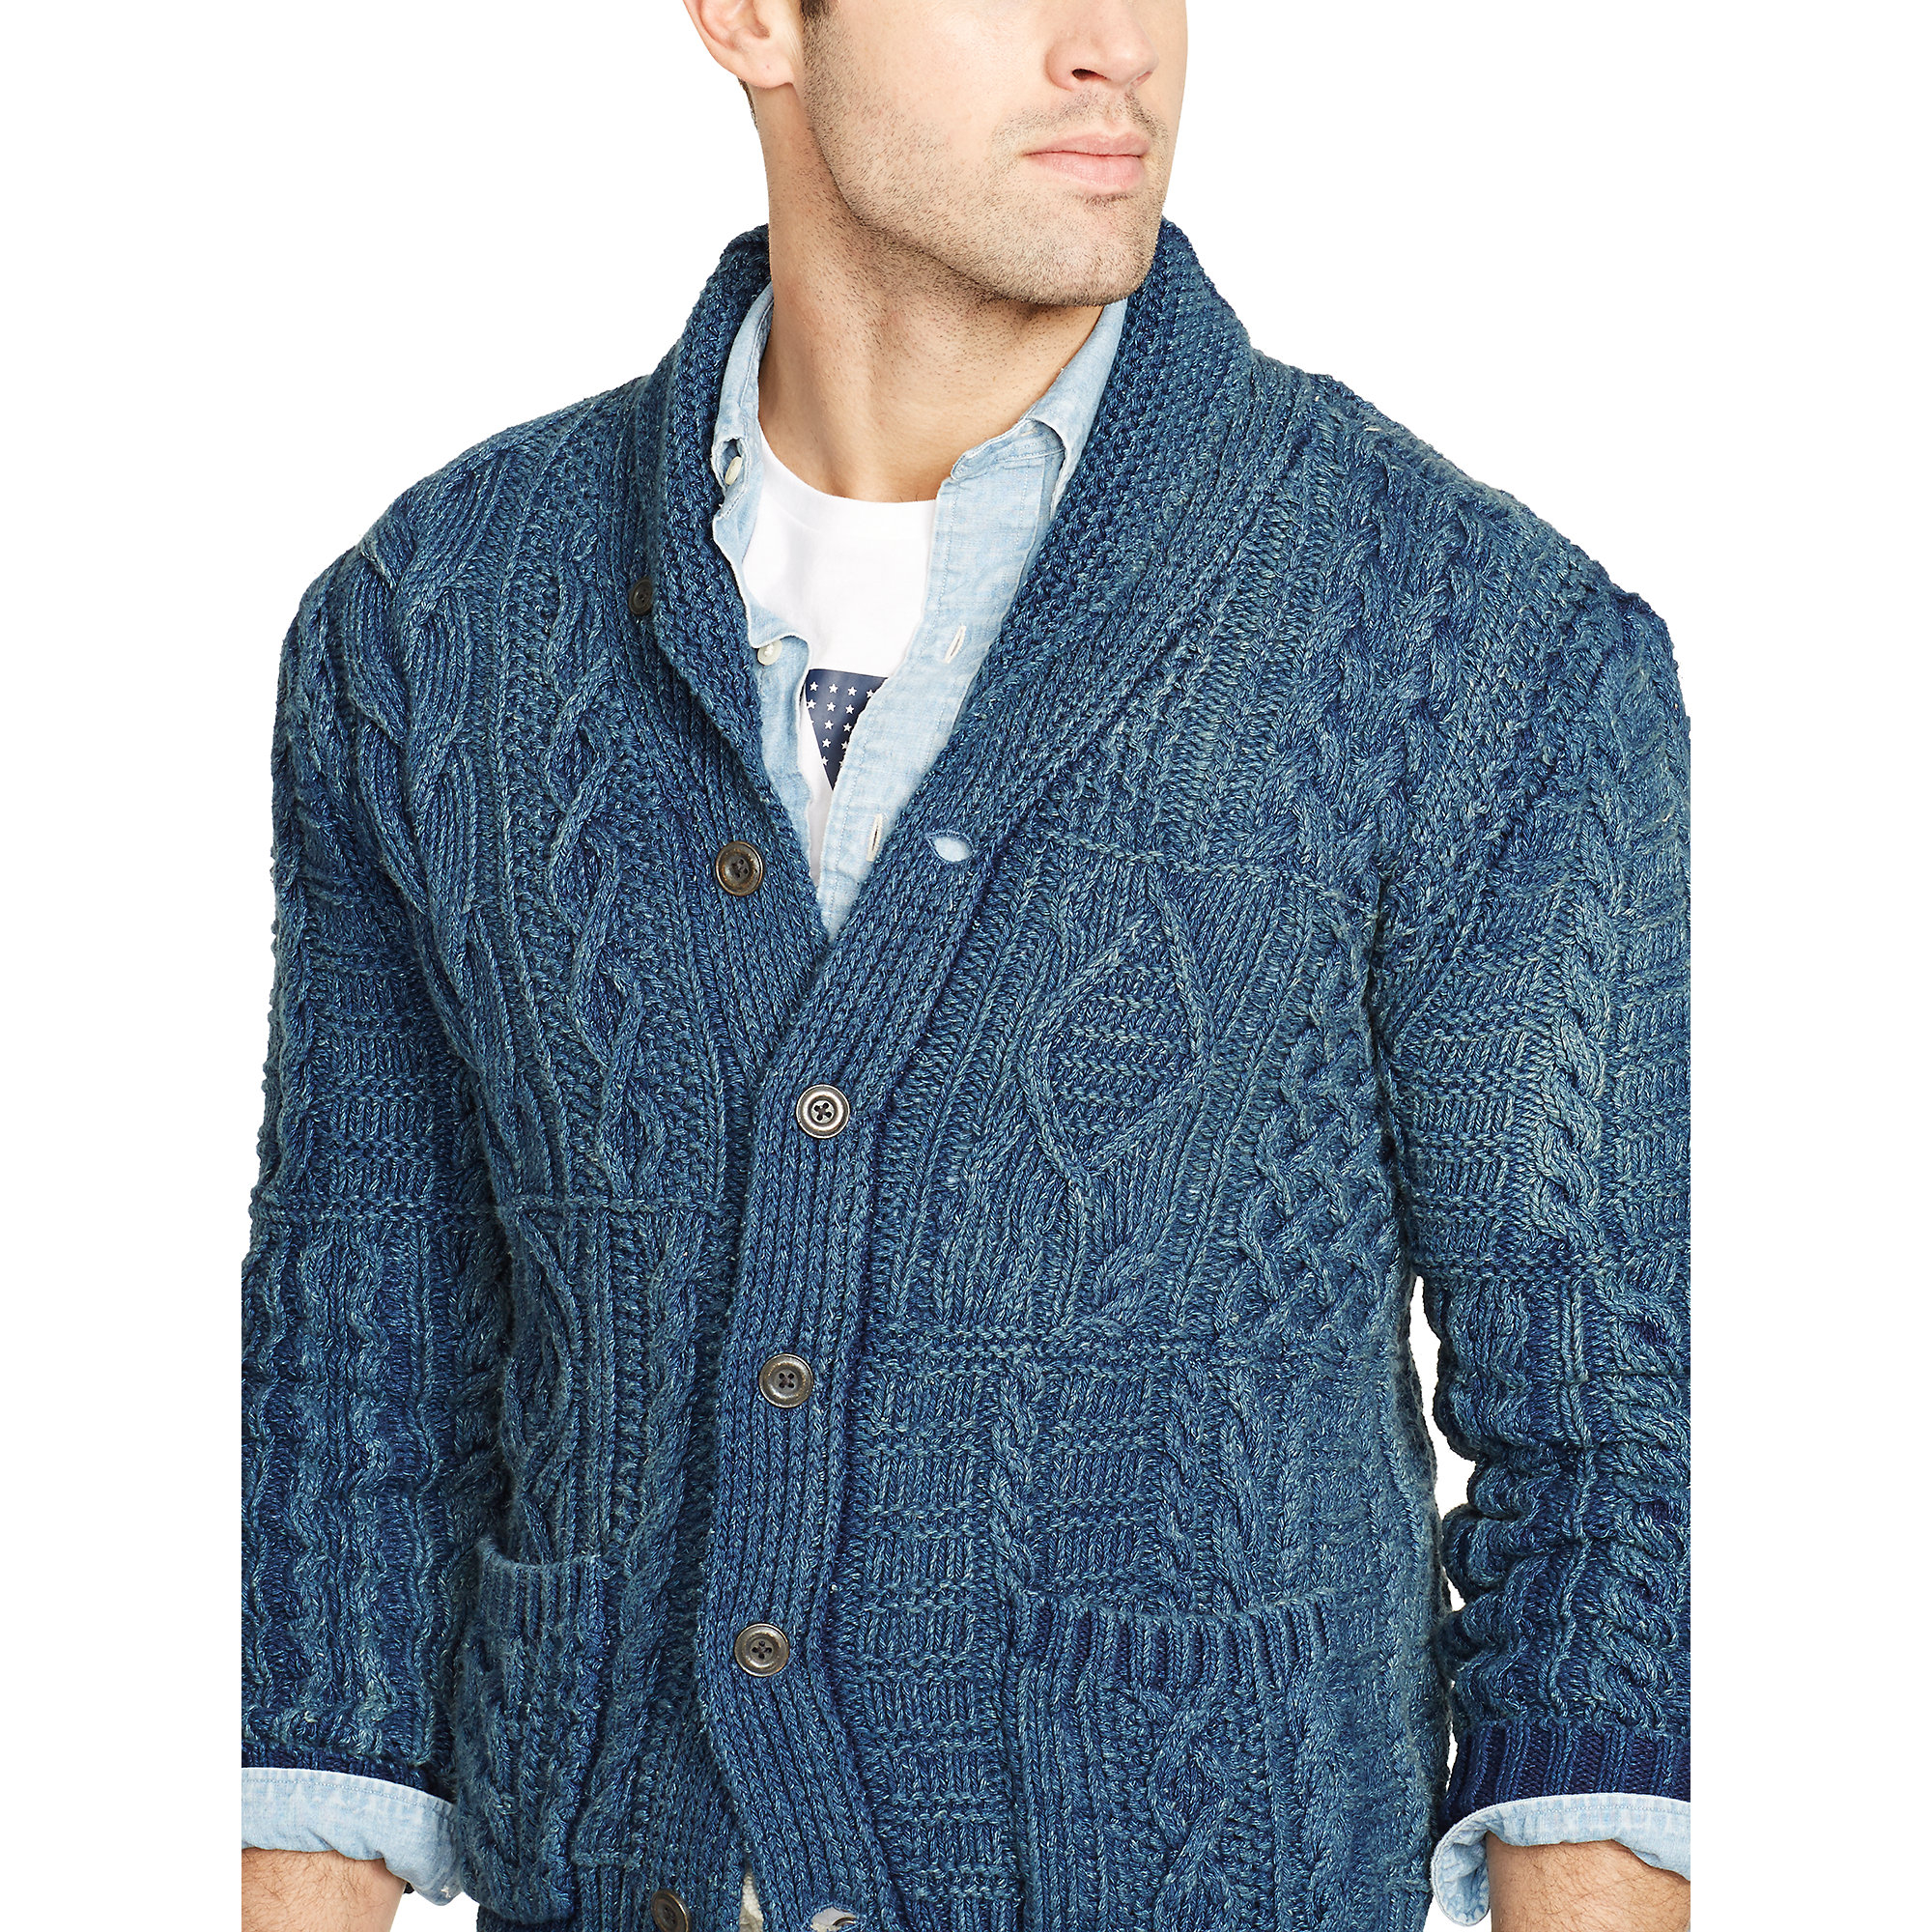 Lyst Polo Ralph Lauren Indigo Cotton Shawl Cardigan In